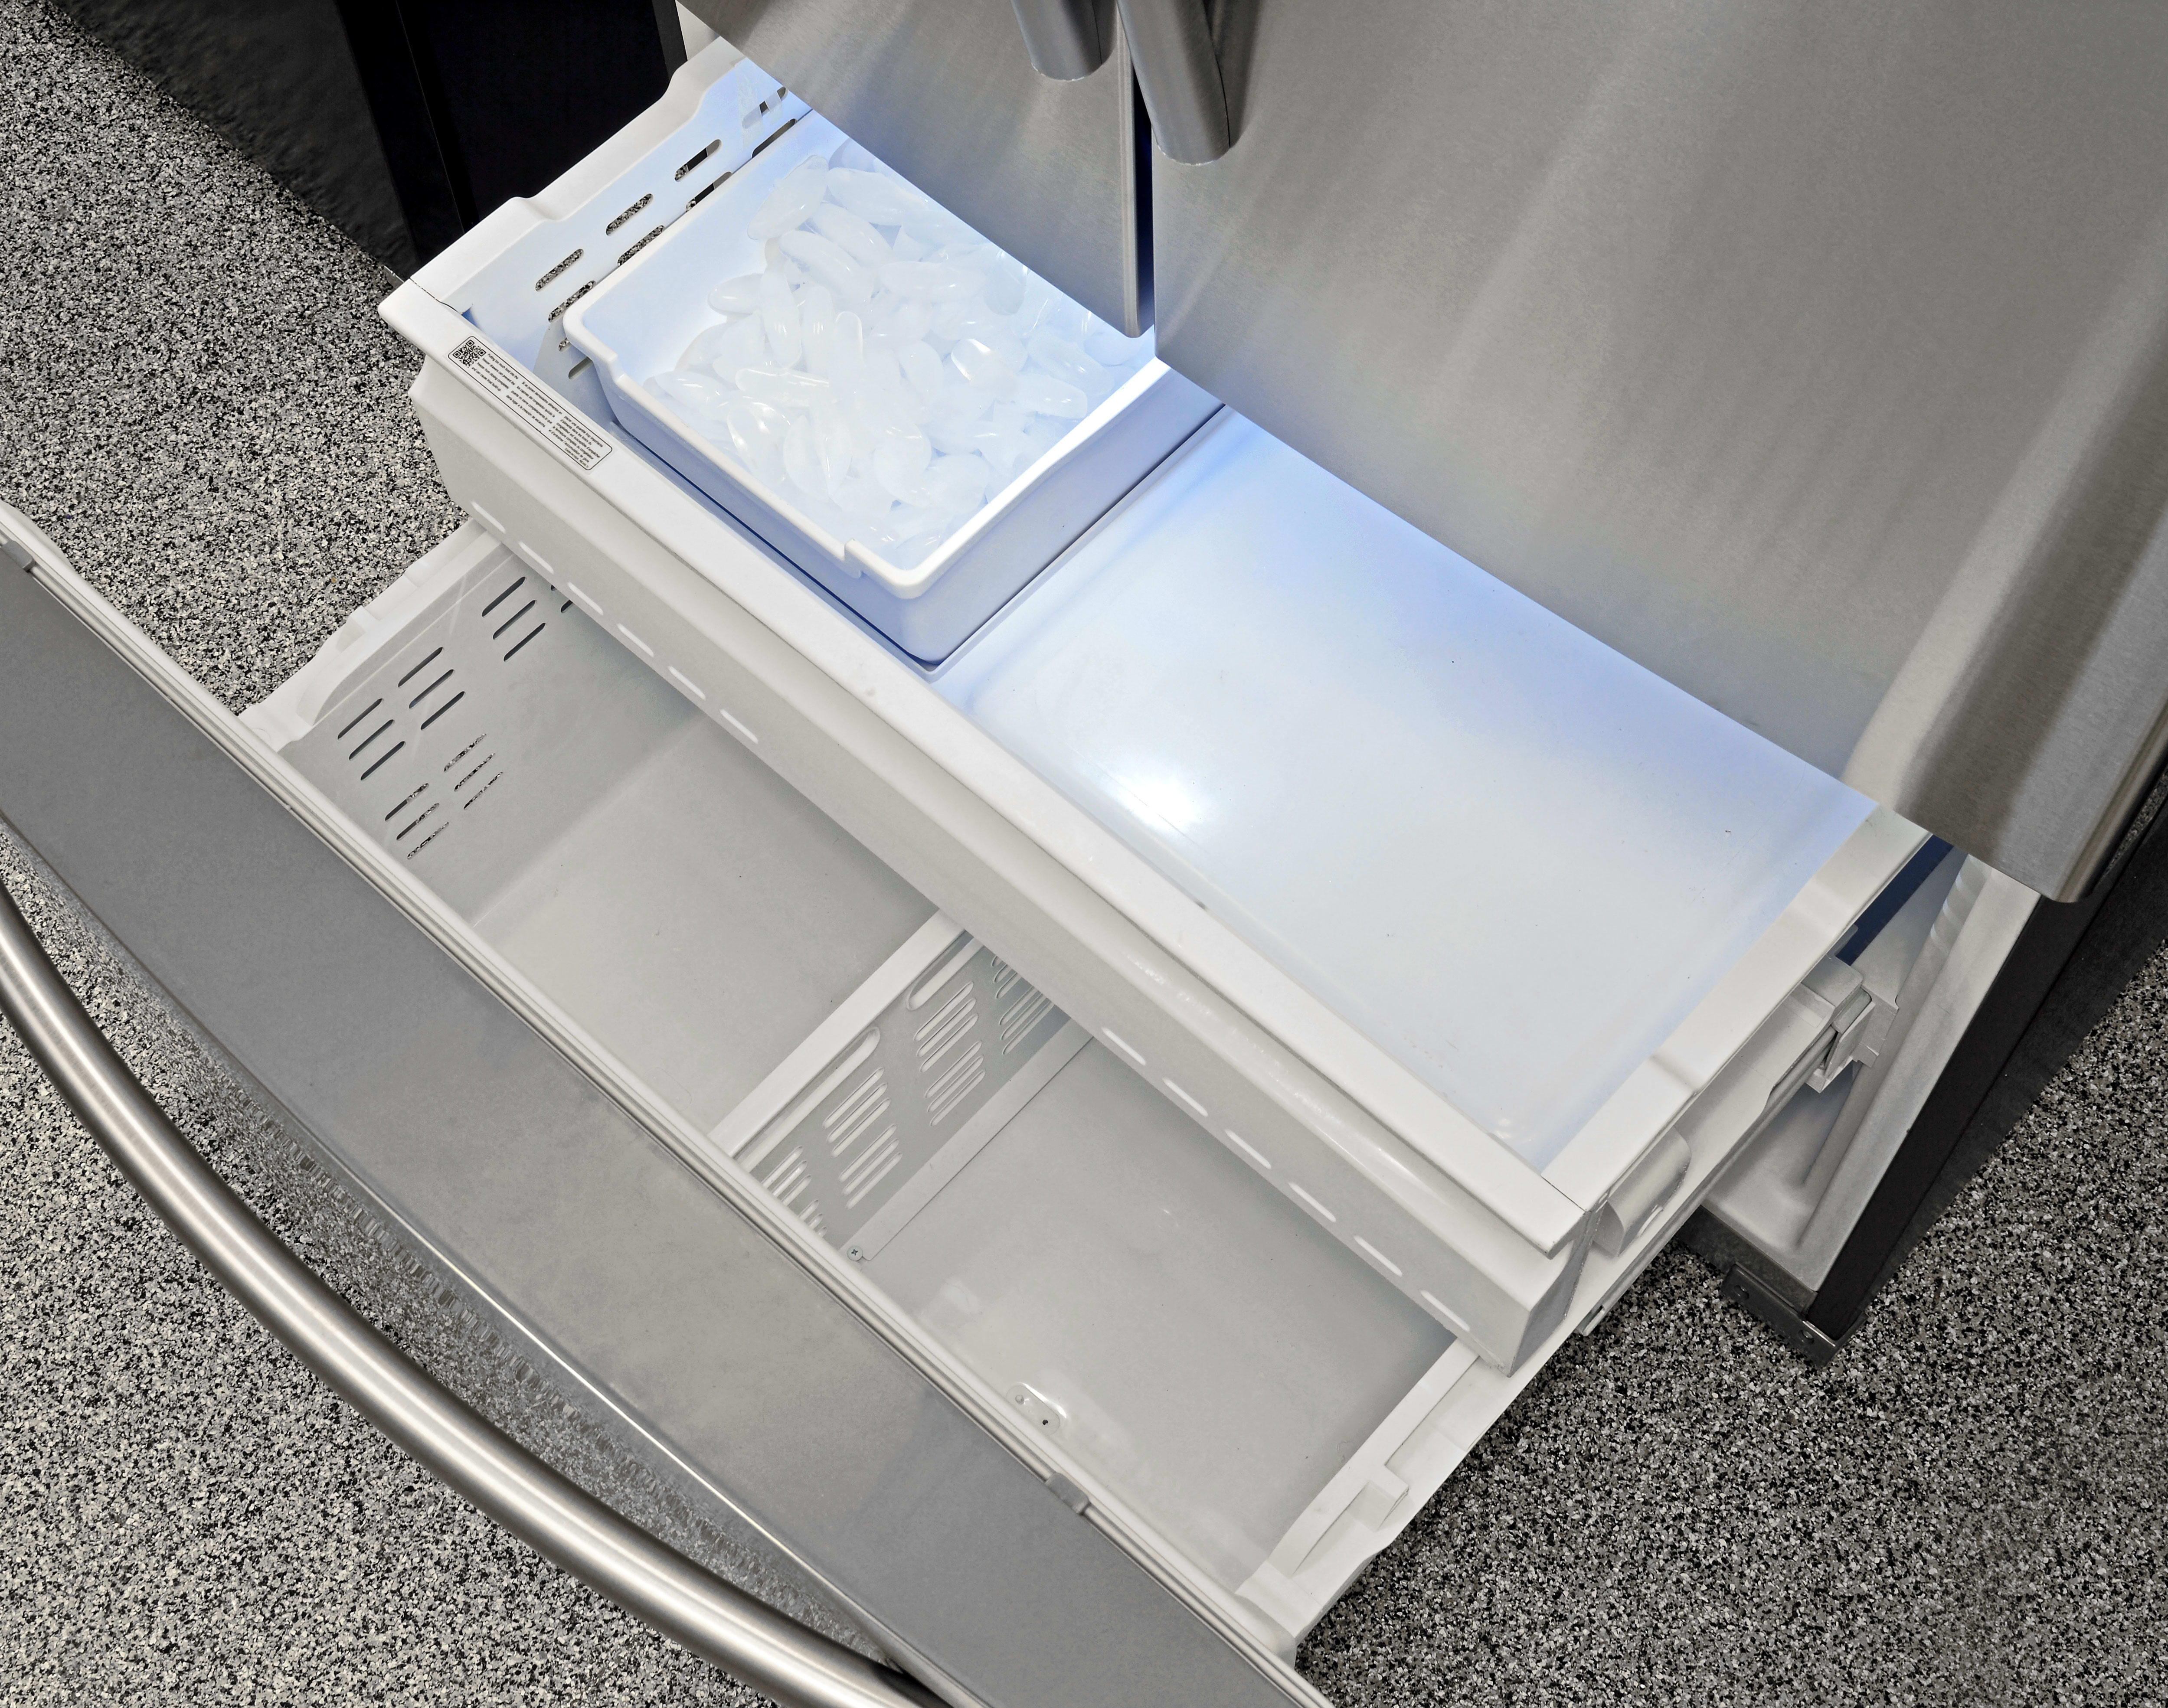 Samsung RF260BEAESR French Door Refrigerator Review - Reviewed